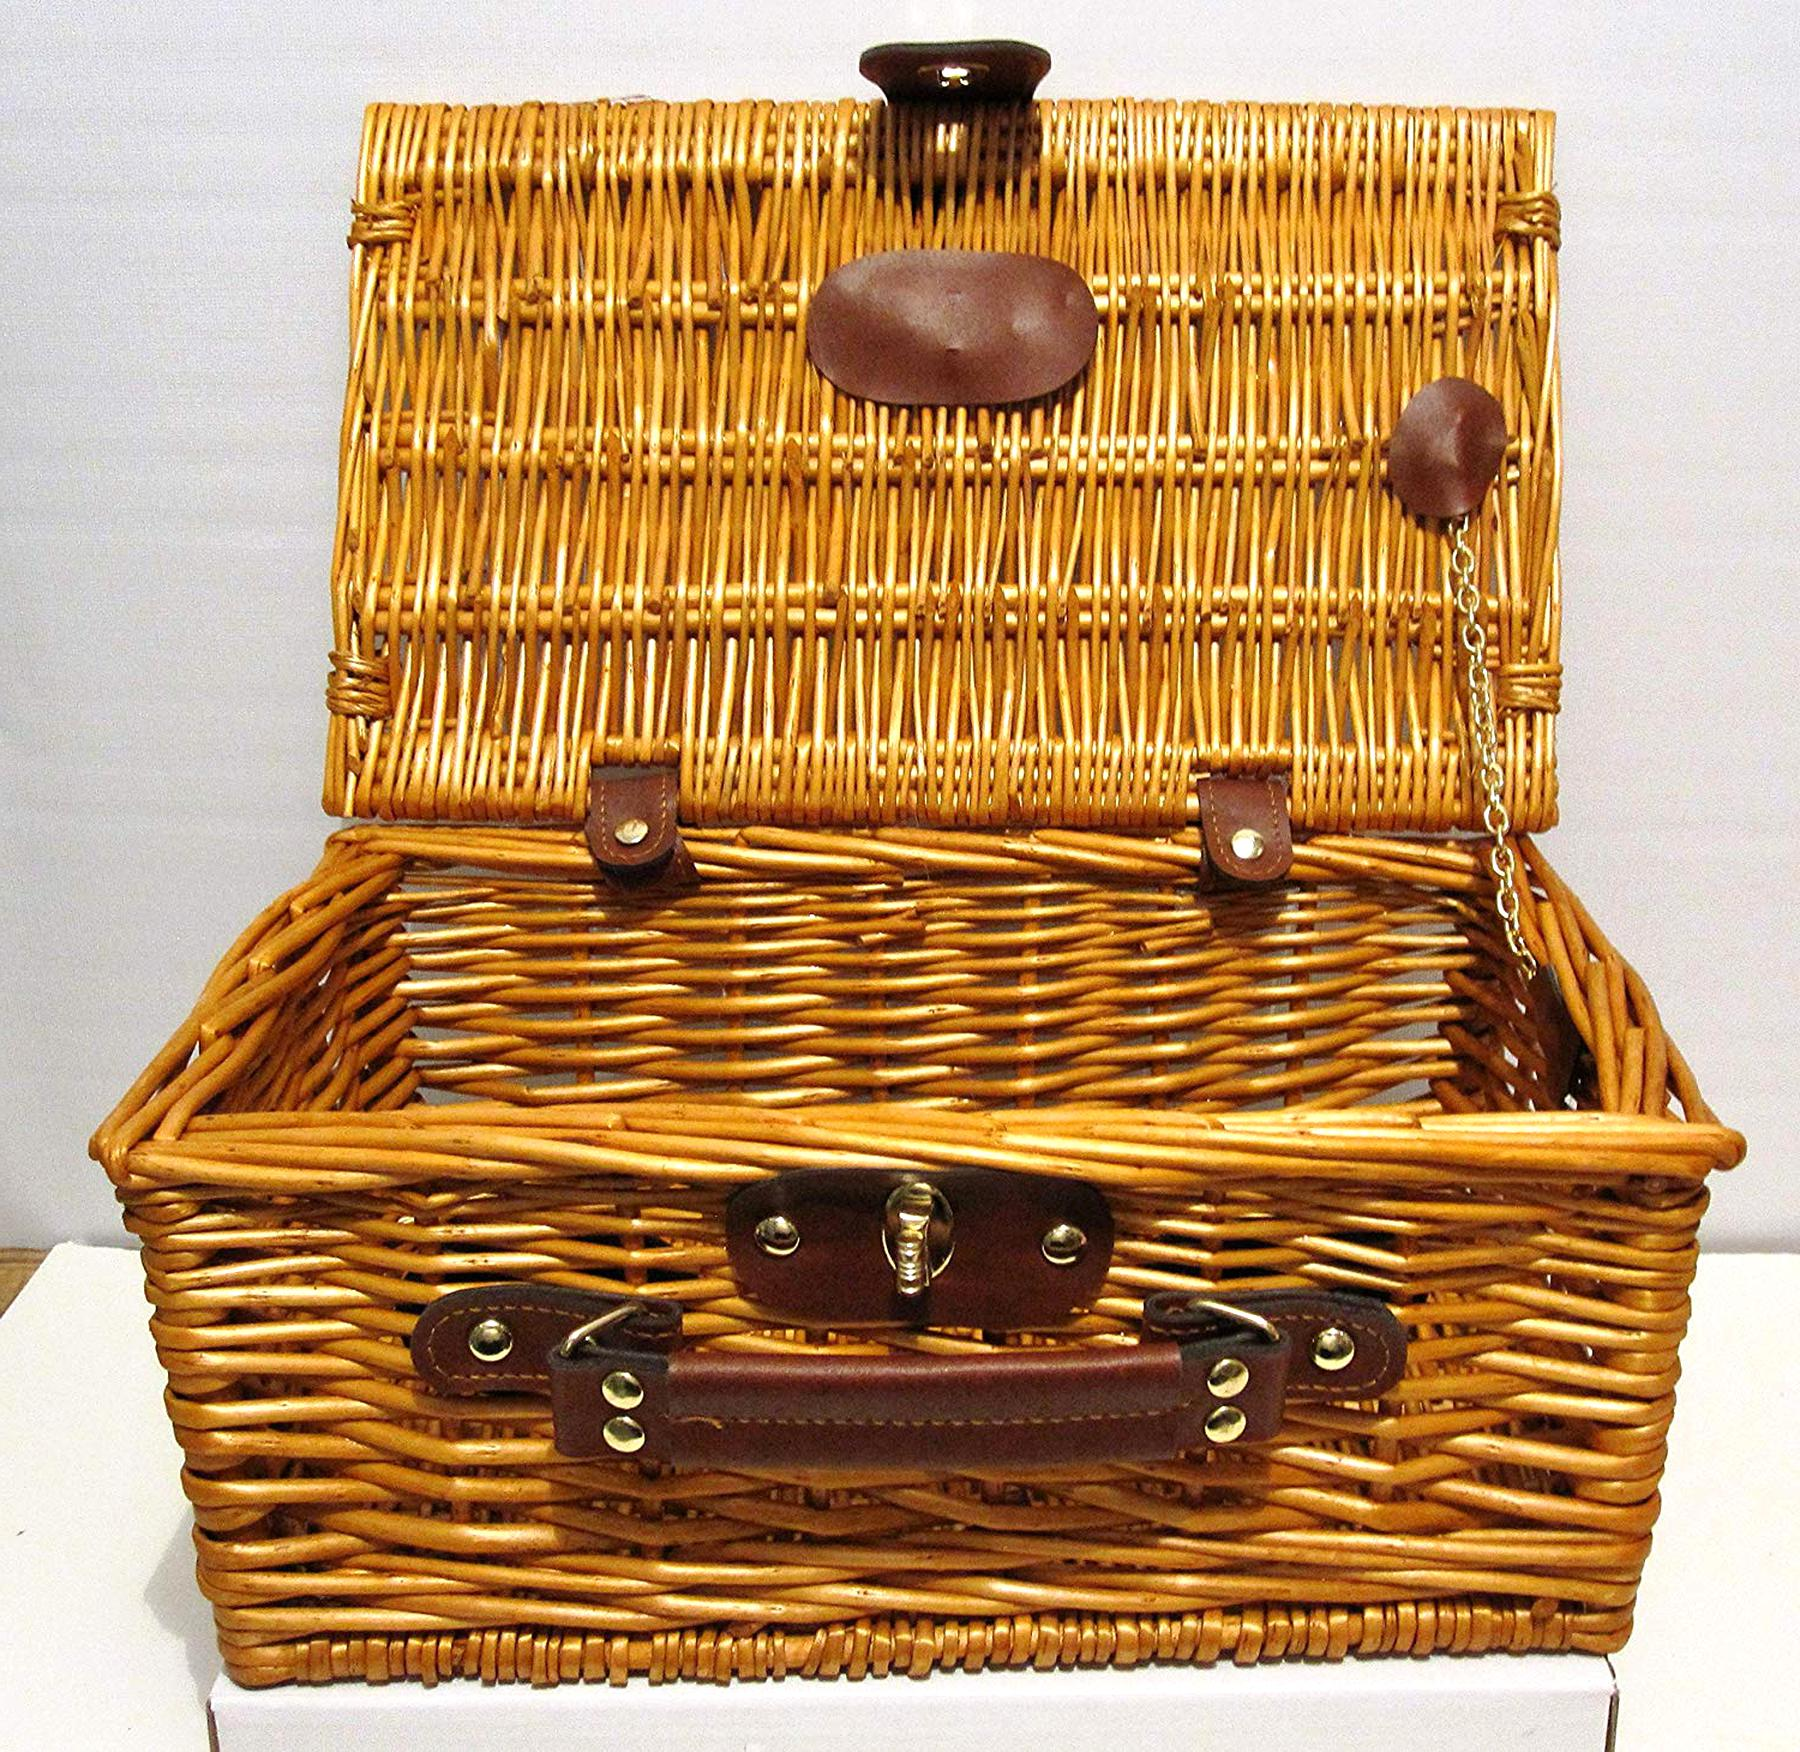 wicker suitcase for sale